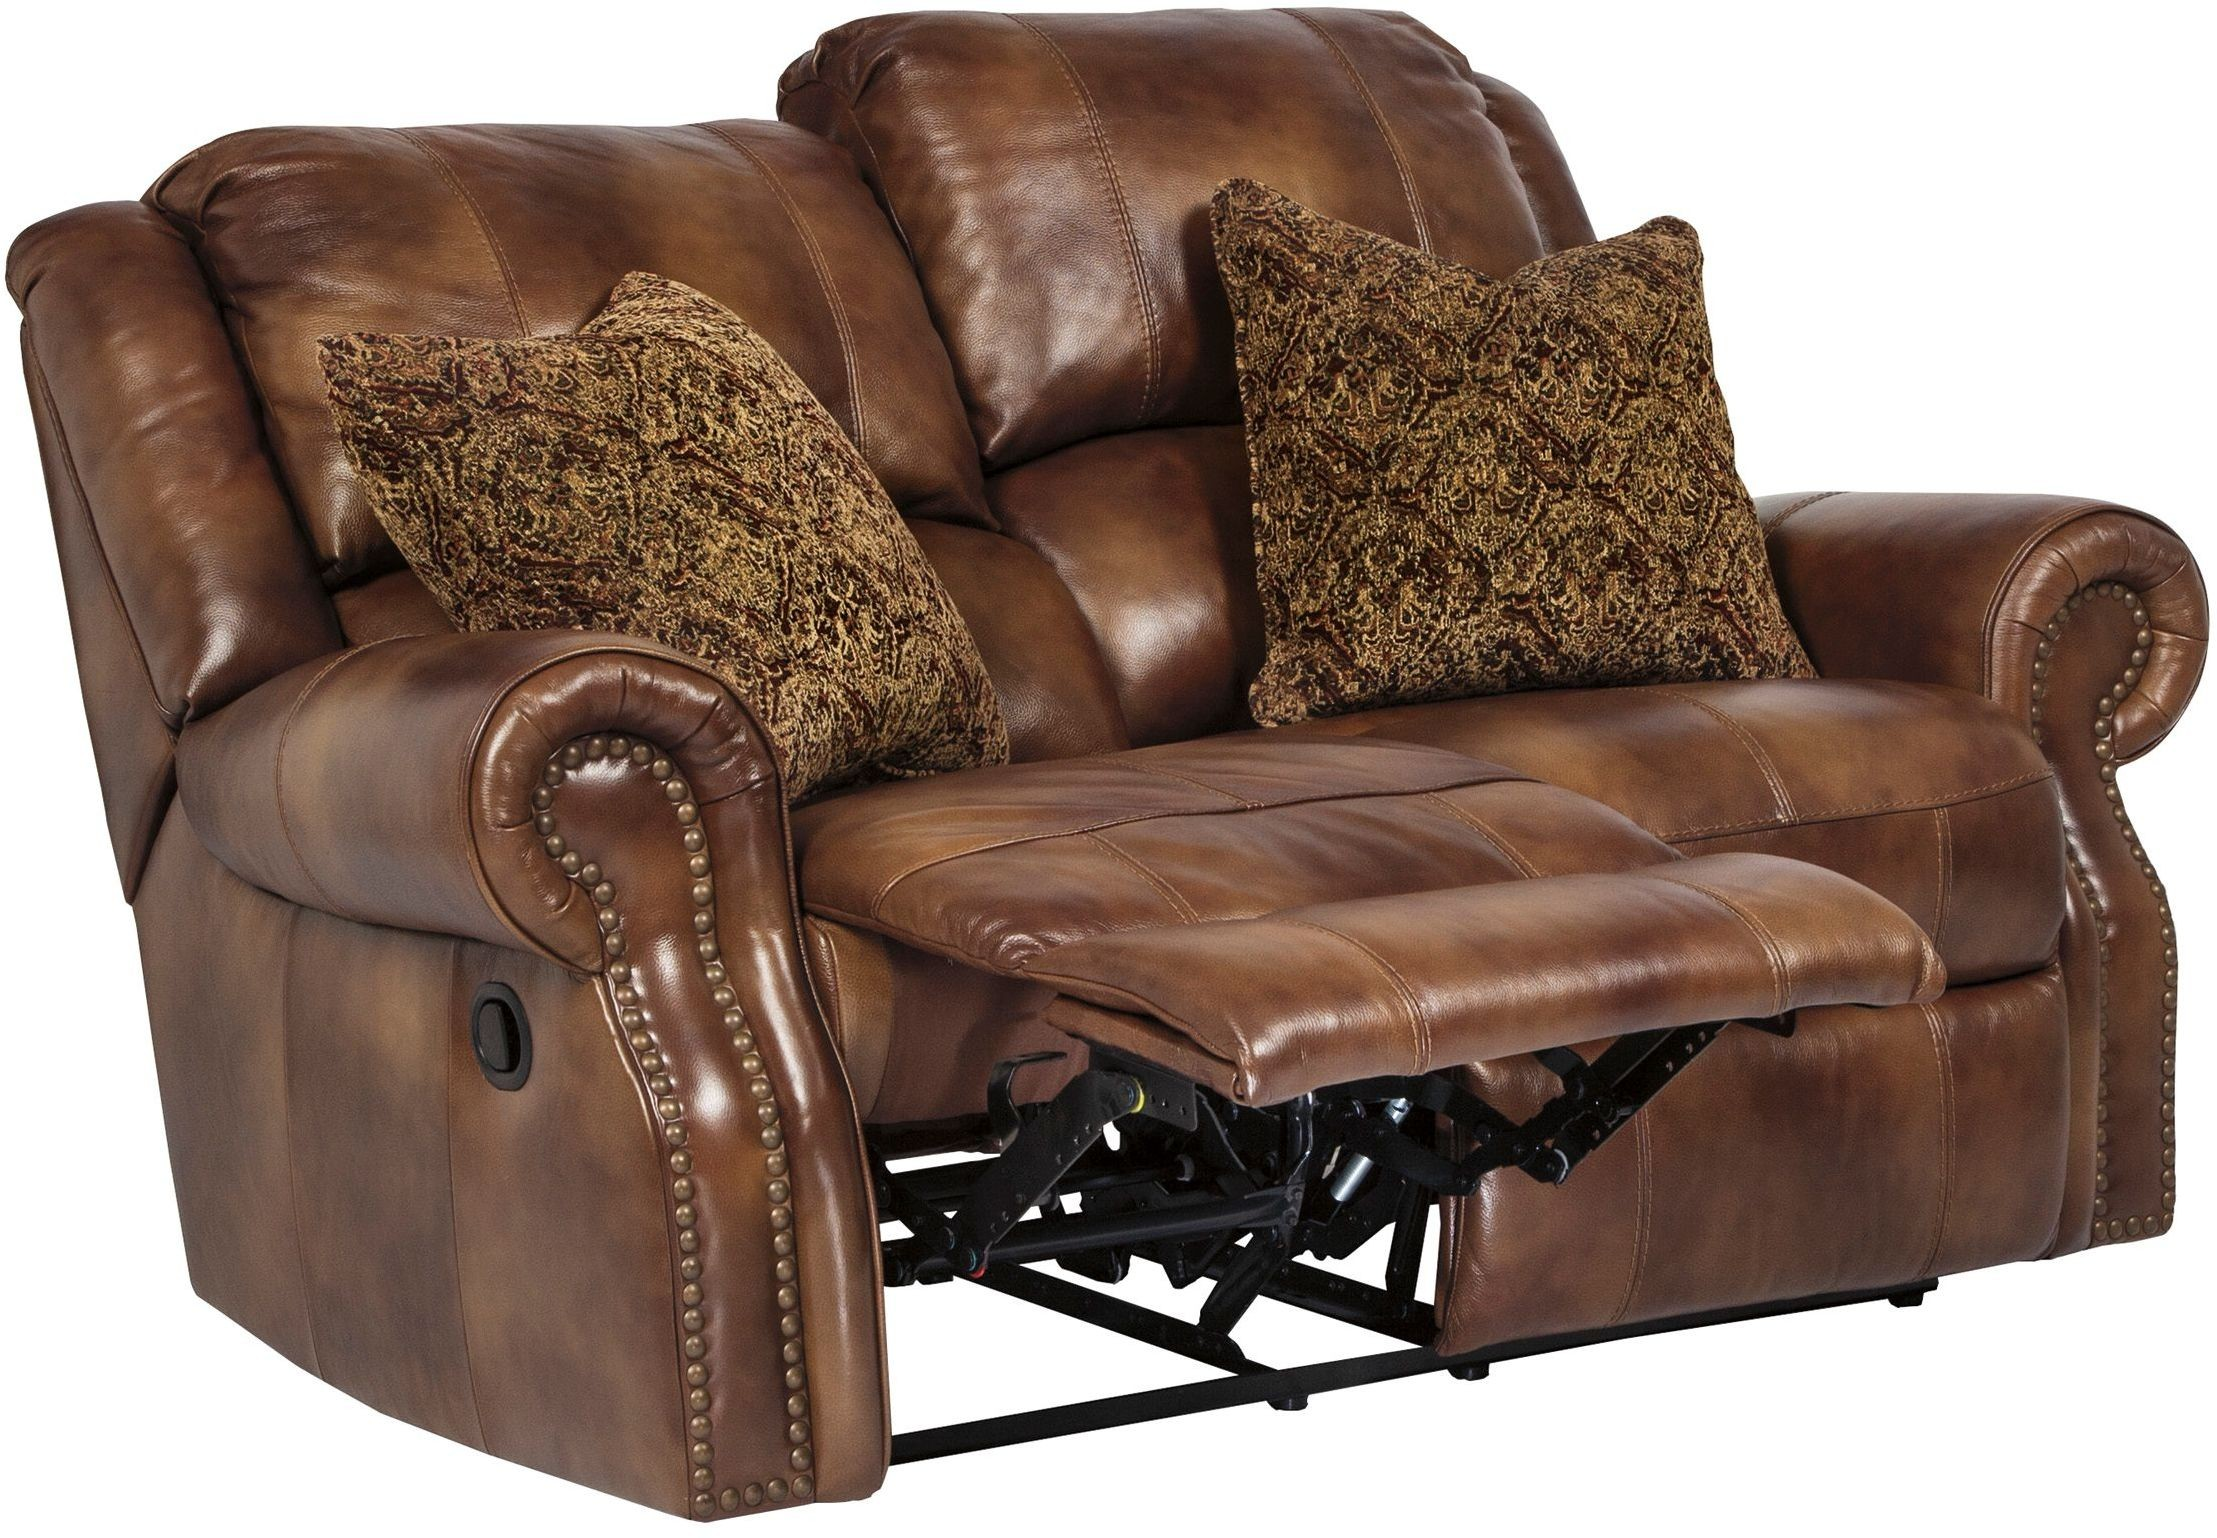 Walworth Auburn Power Reclining Loveseat From Ashley